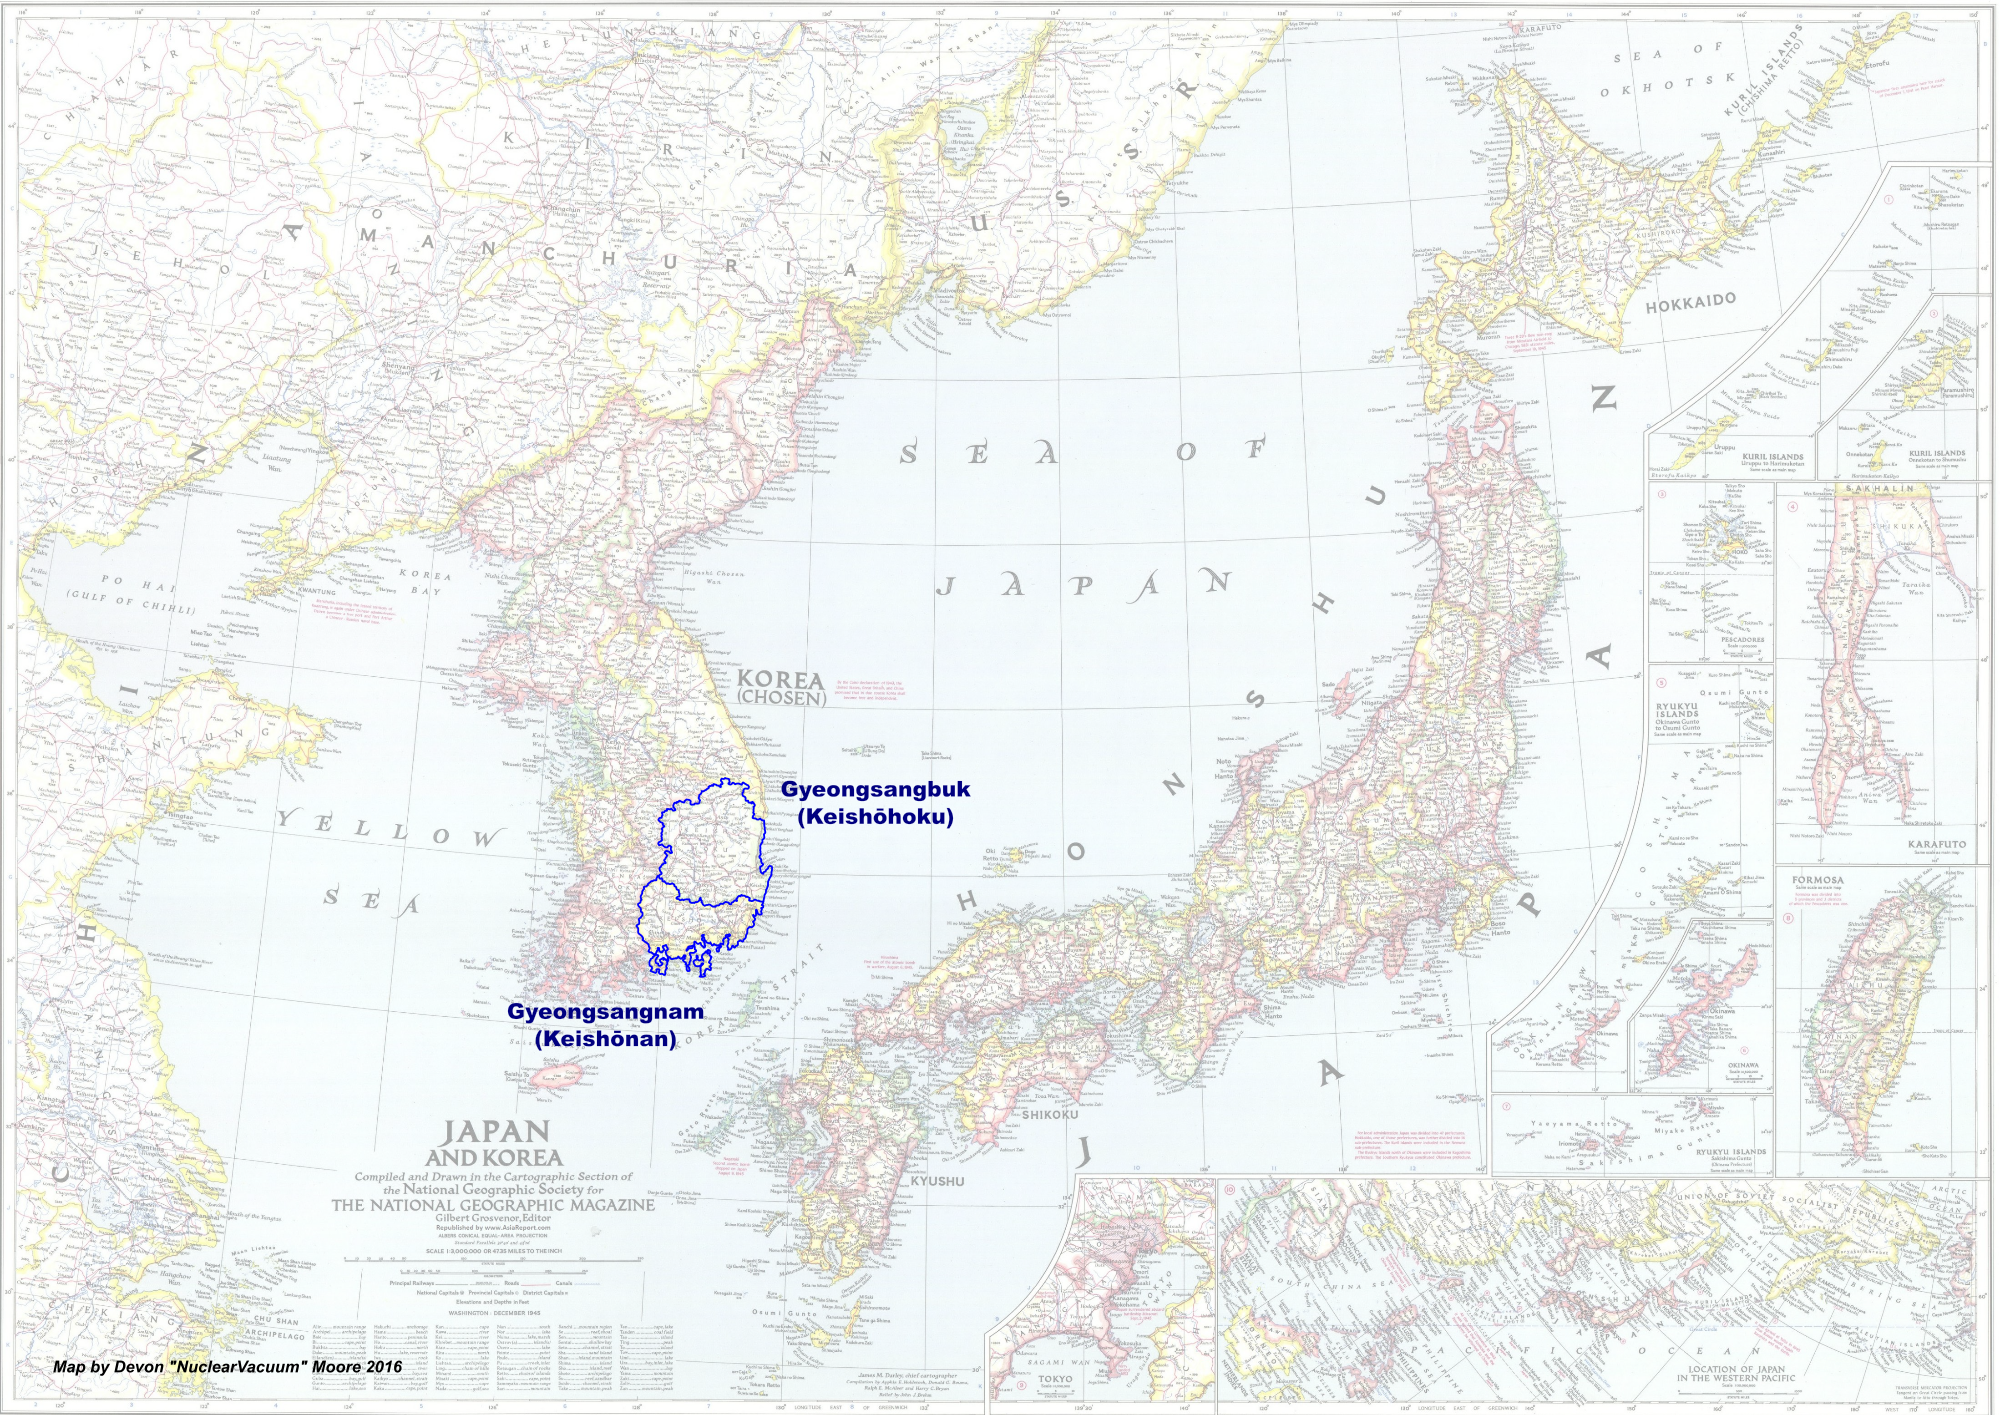 Image Map Of Japan Russian Americapng Alternative History - Japan map 6